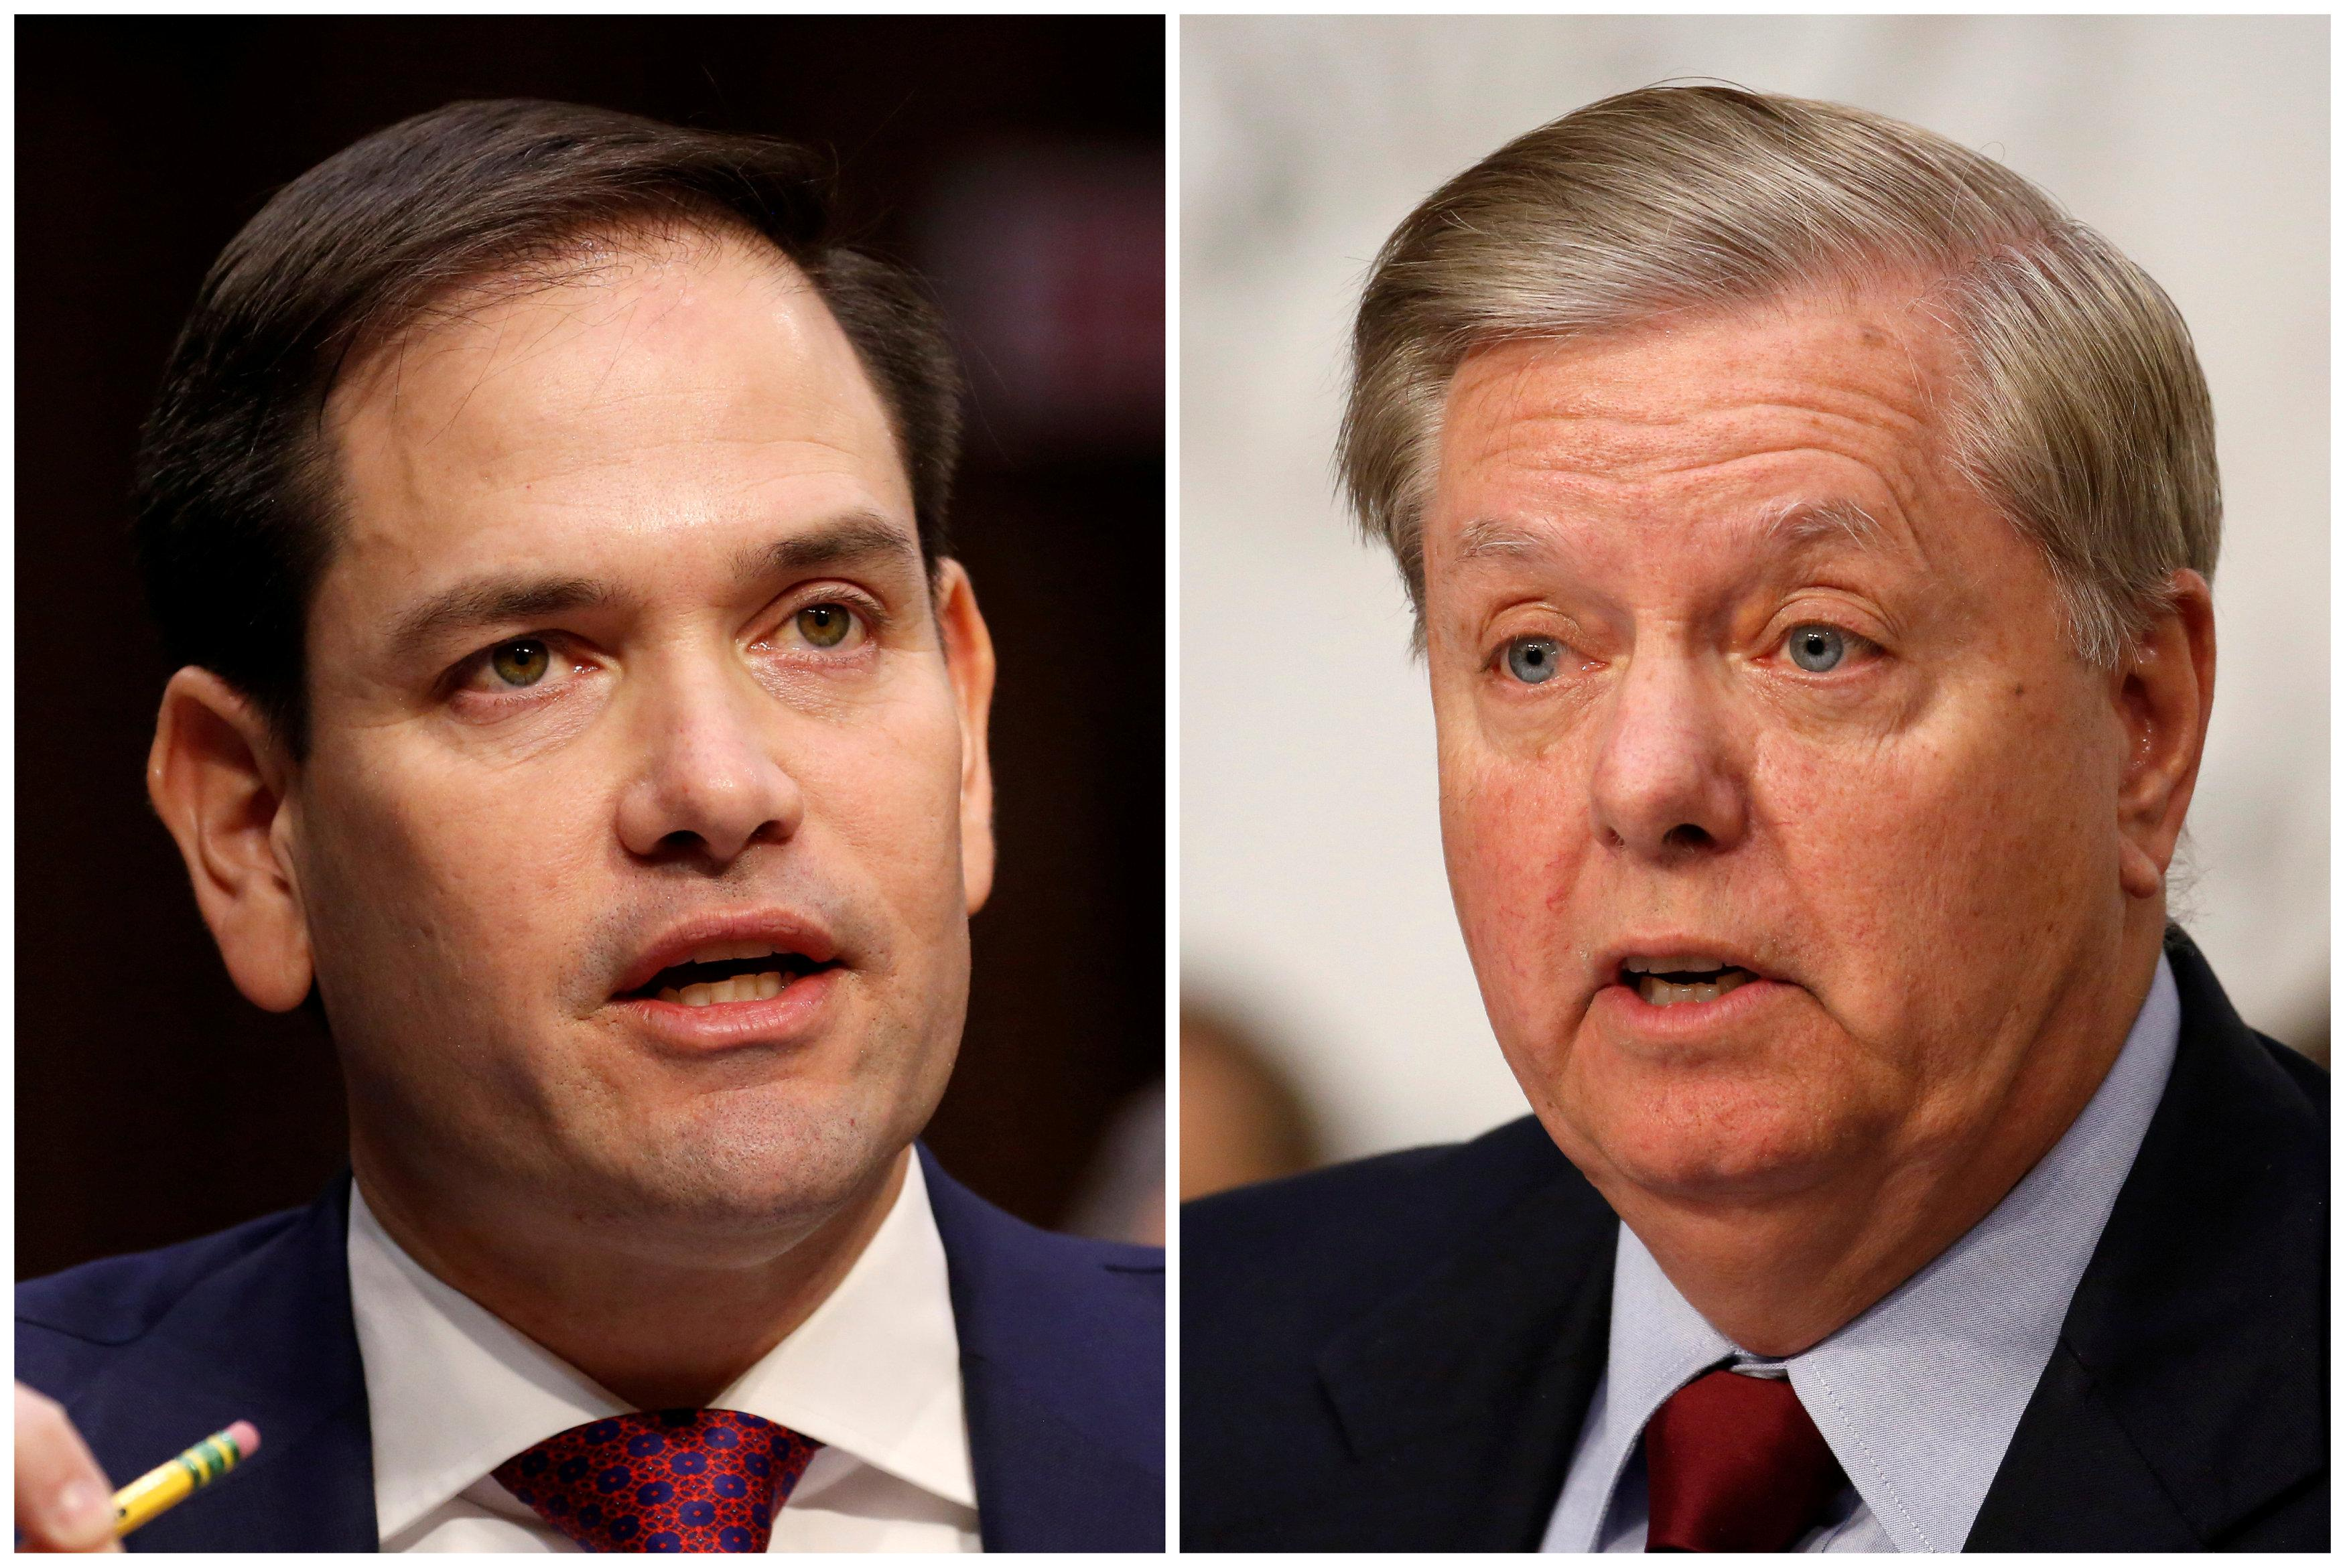 FILE PHOTOS: Republican U.S. Senators Marco Rubio (L) and Lindsey Graham are seen in this combination photo from U.S. Senate hearings on Capitol Hill in Washington, U.S. on March 14, 2018 and on June 18, 2018 respectively.  Joshua Robertss